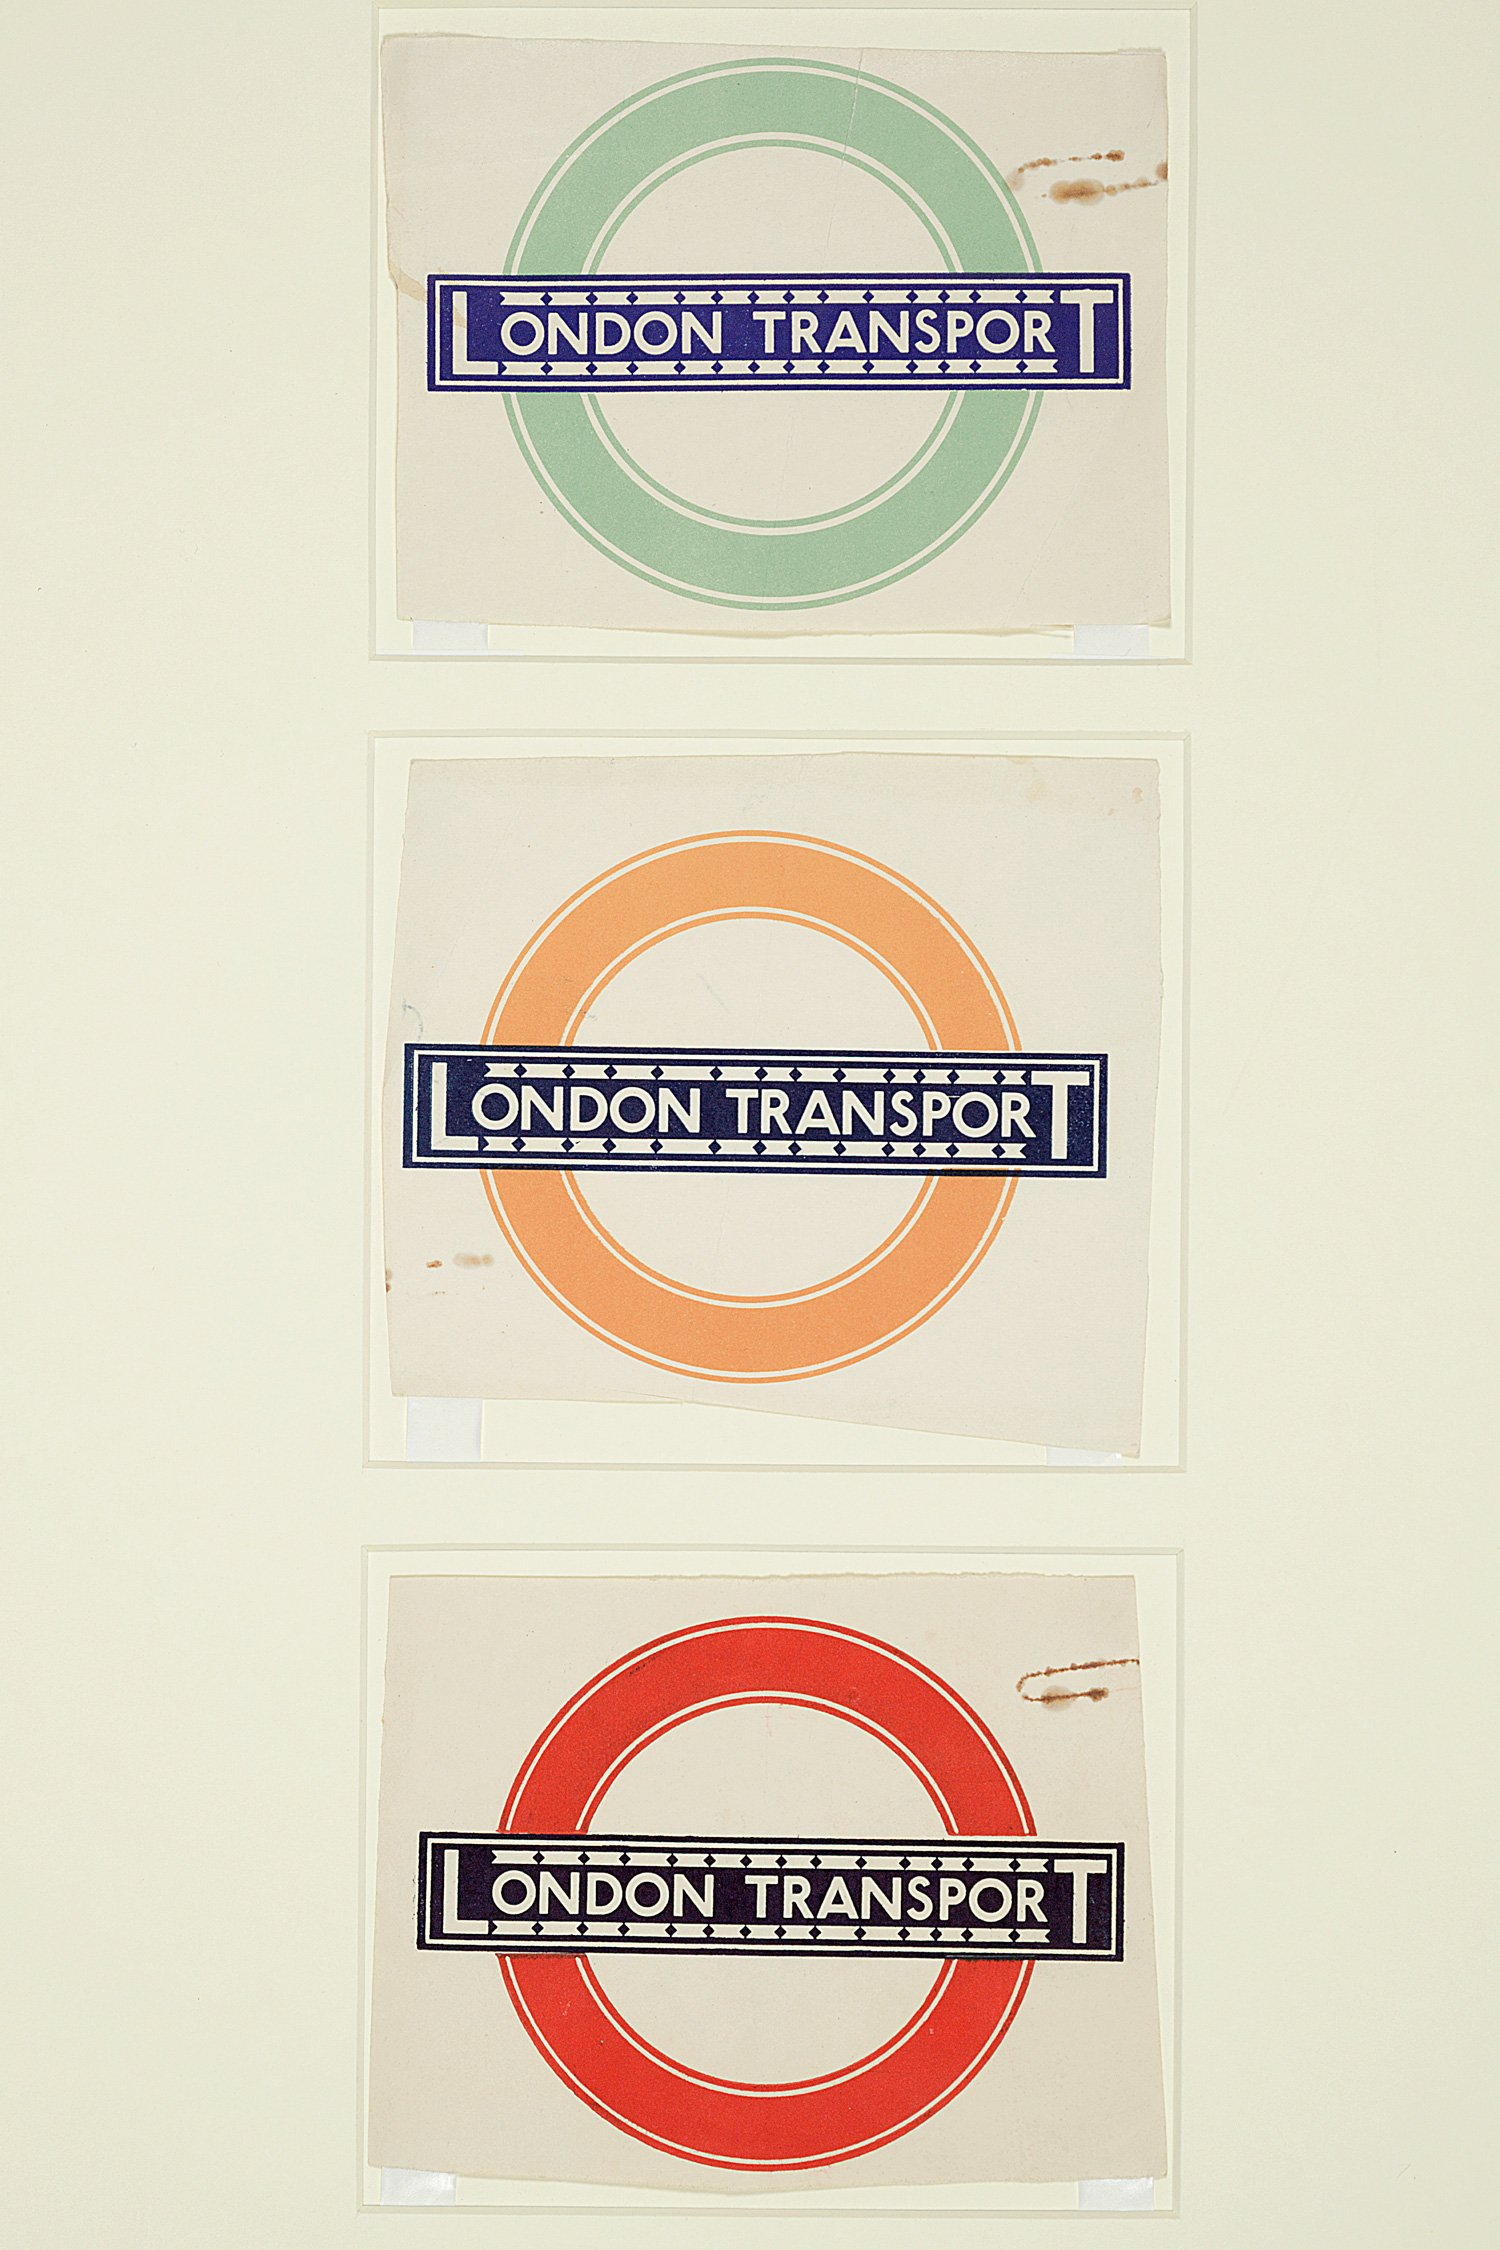 London Underground's iconic Johnston Sans typeface